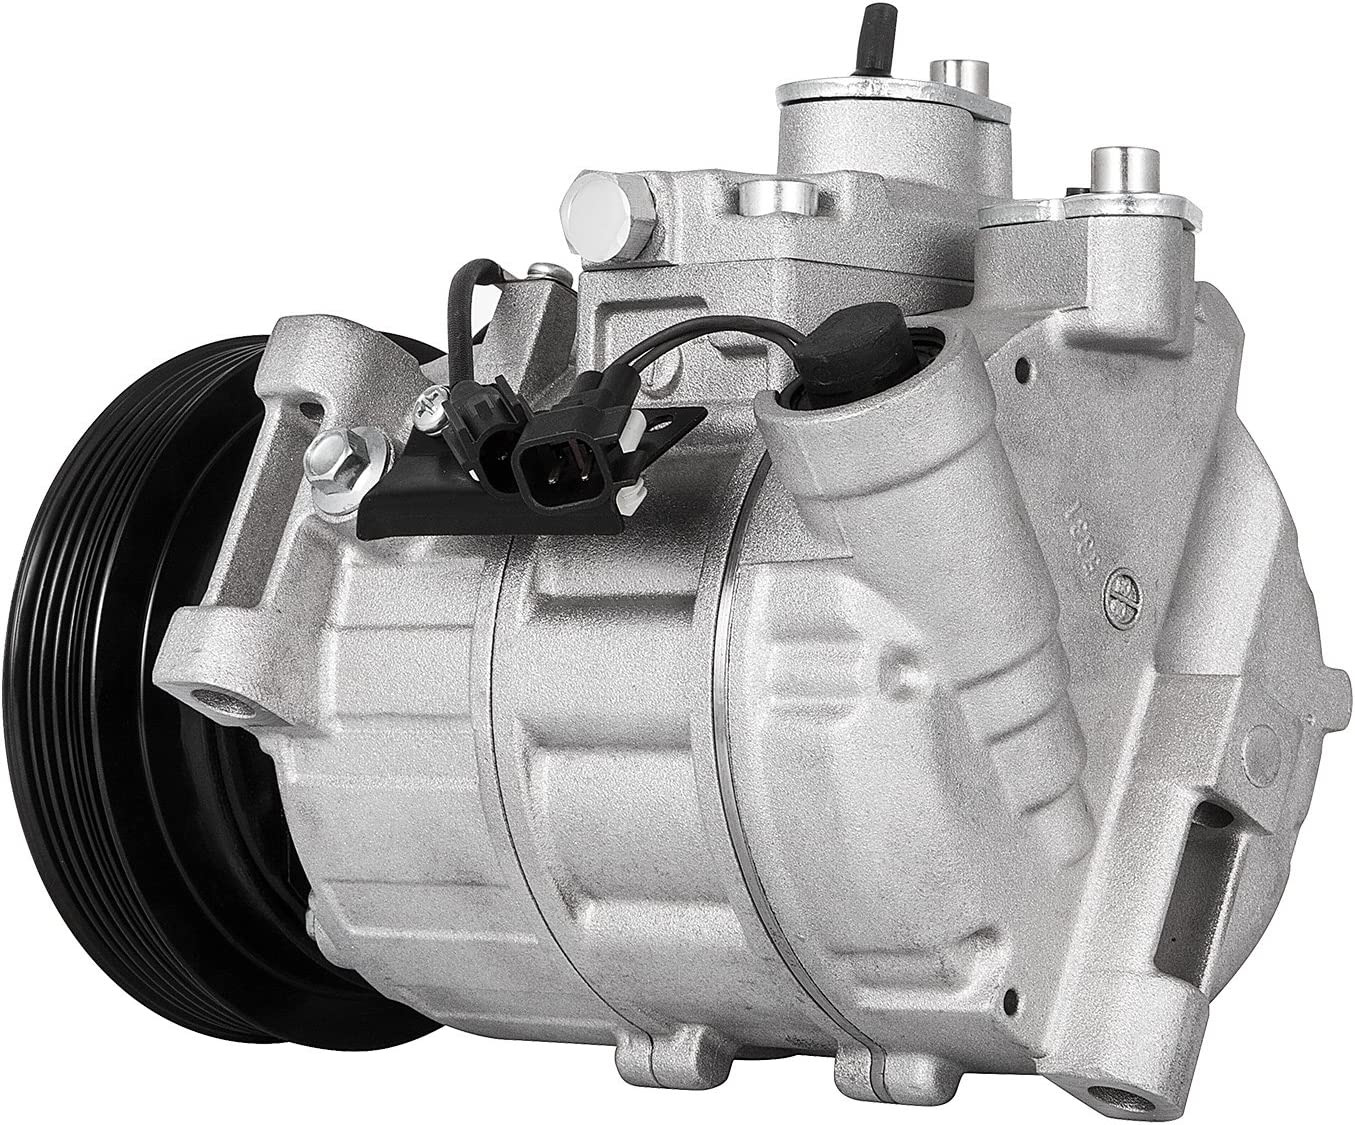 Mophorn CO 11323C 360027460 DCS17E AC Compressor and Clutch for Land Rover LR2/ Volvo S60 S80 V70 XC60 XC70 XC90 A//C Compressor LR020193 67675 68675